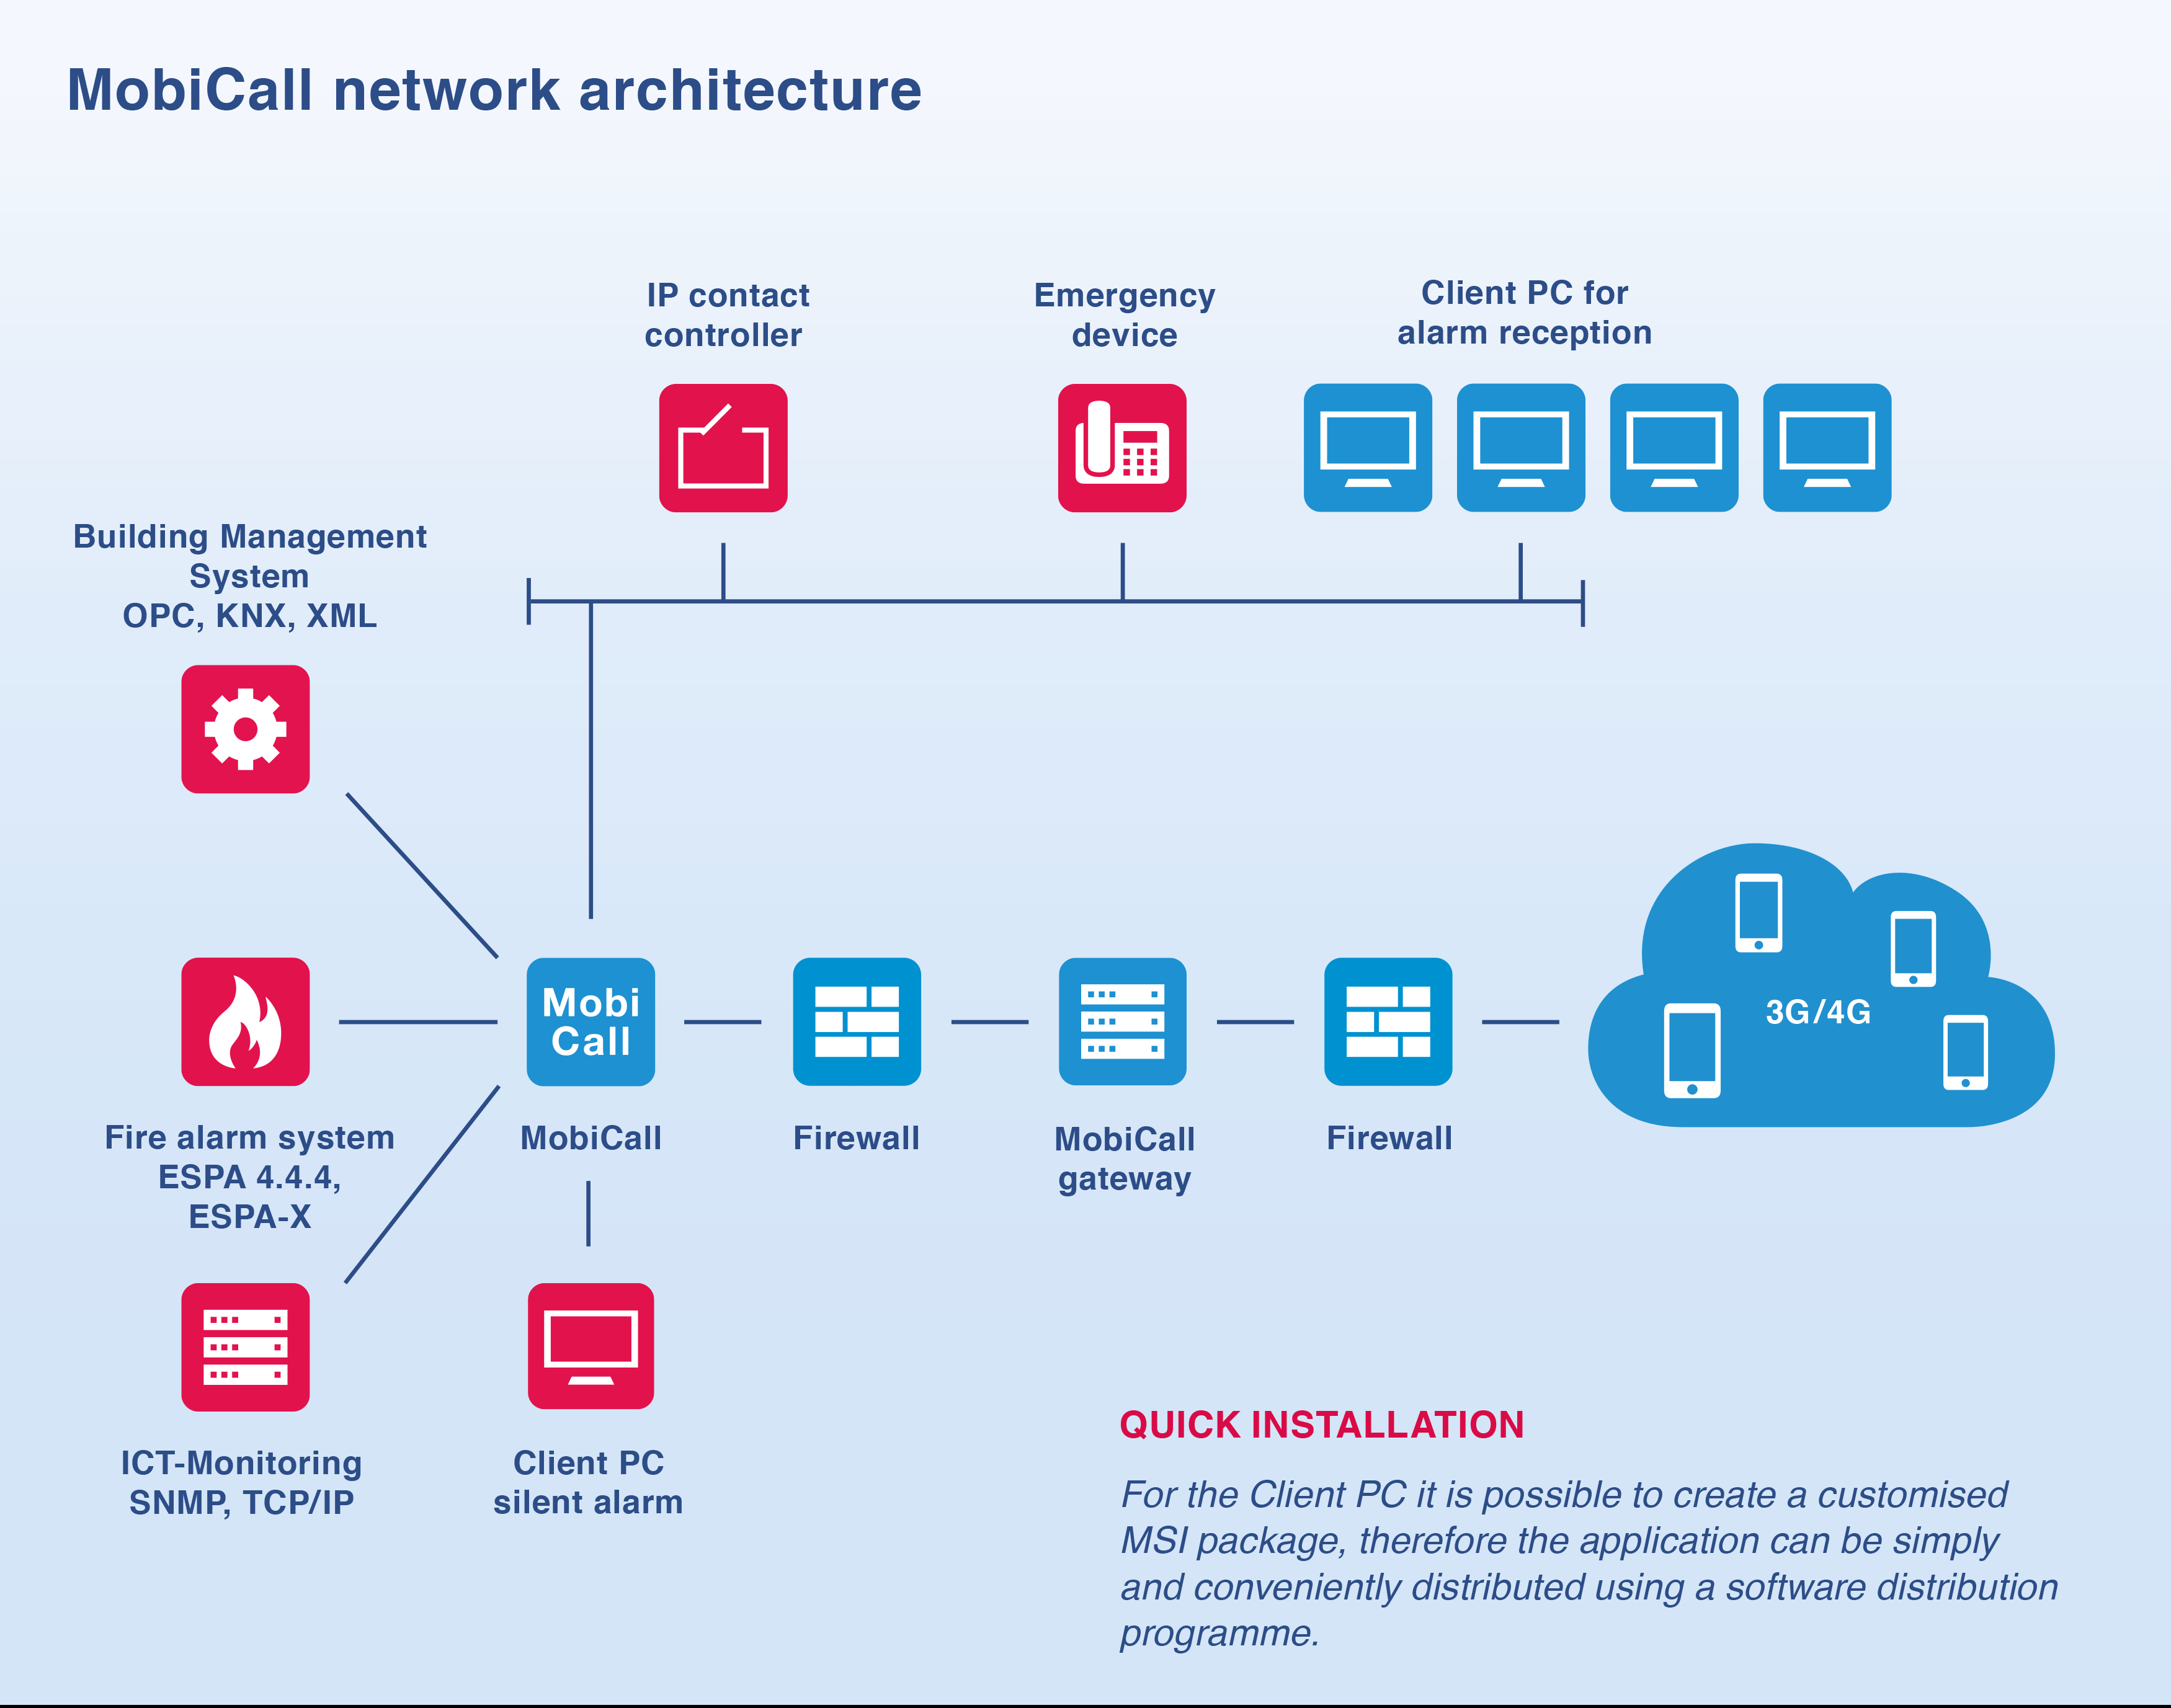 Mobicall network architecture